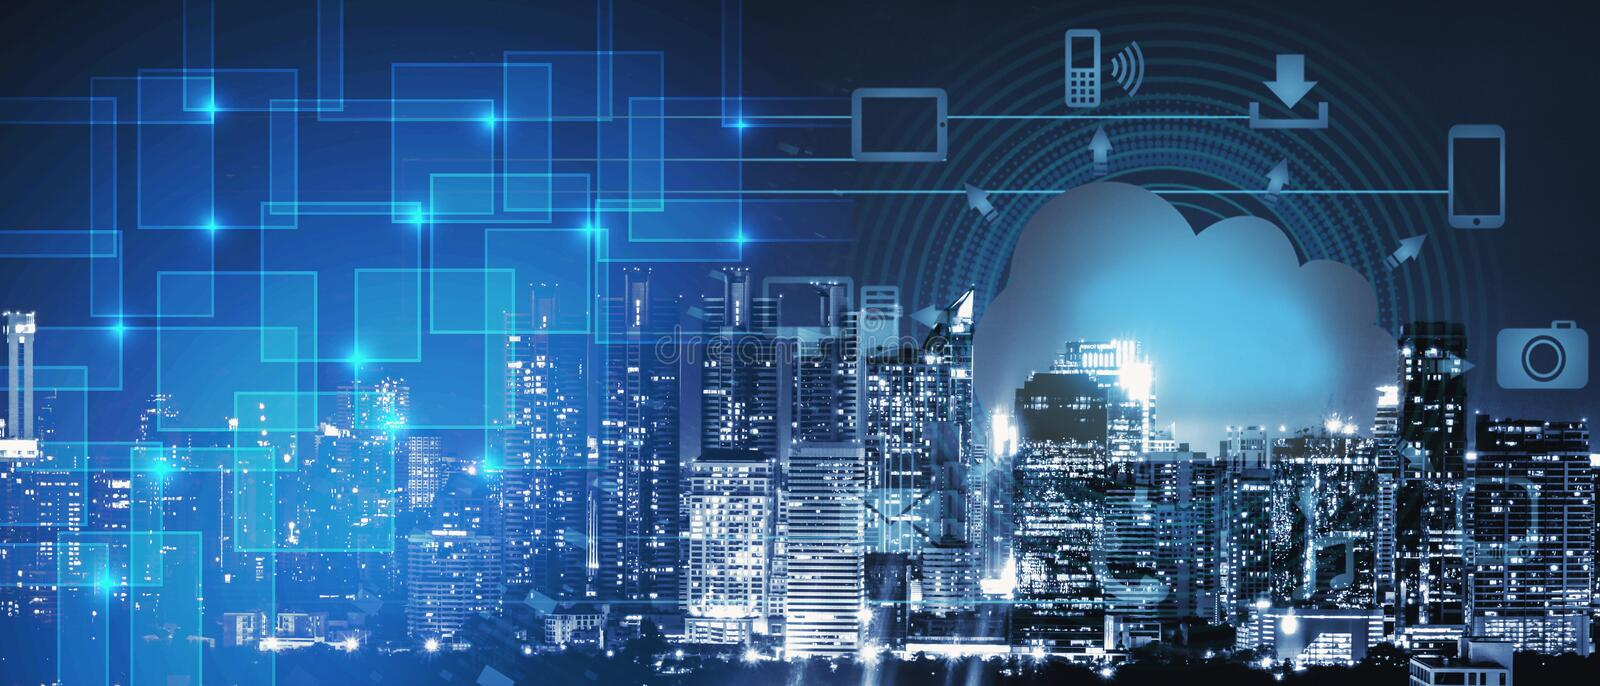 Background of smart city intelligence networking on clound technology, night cityscape with digital and cloud technology sign and royalty free stock photography